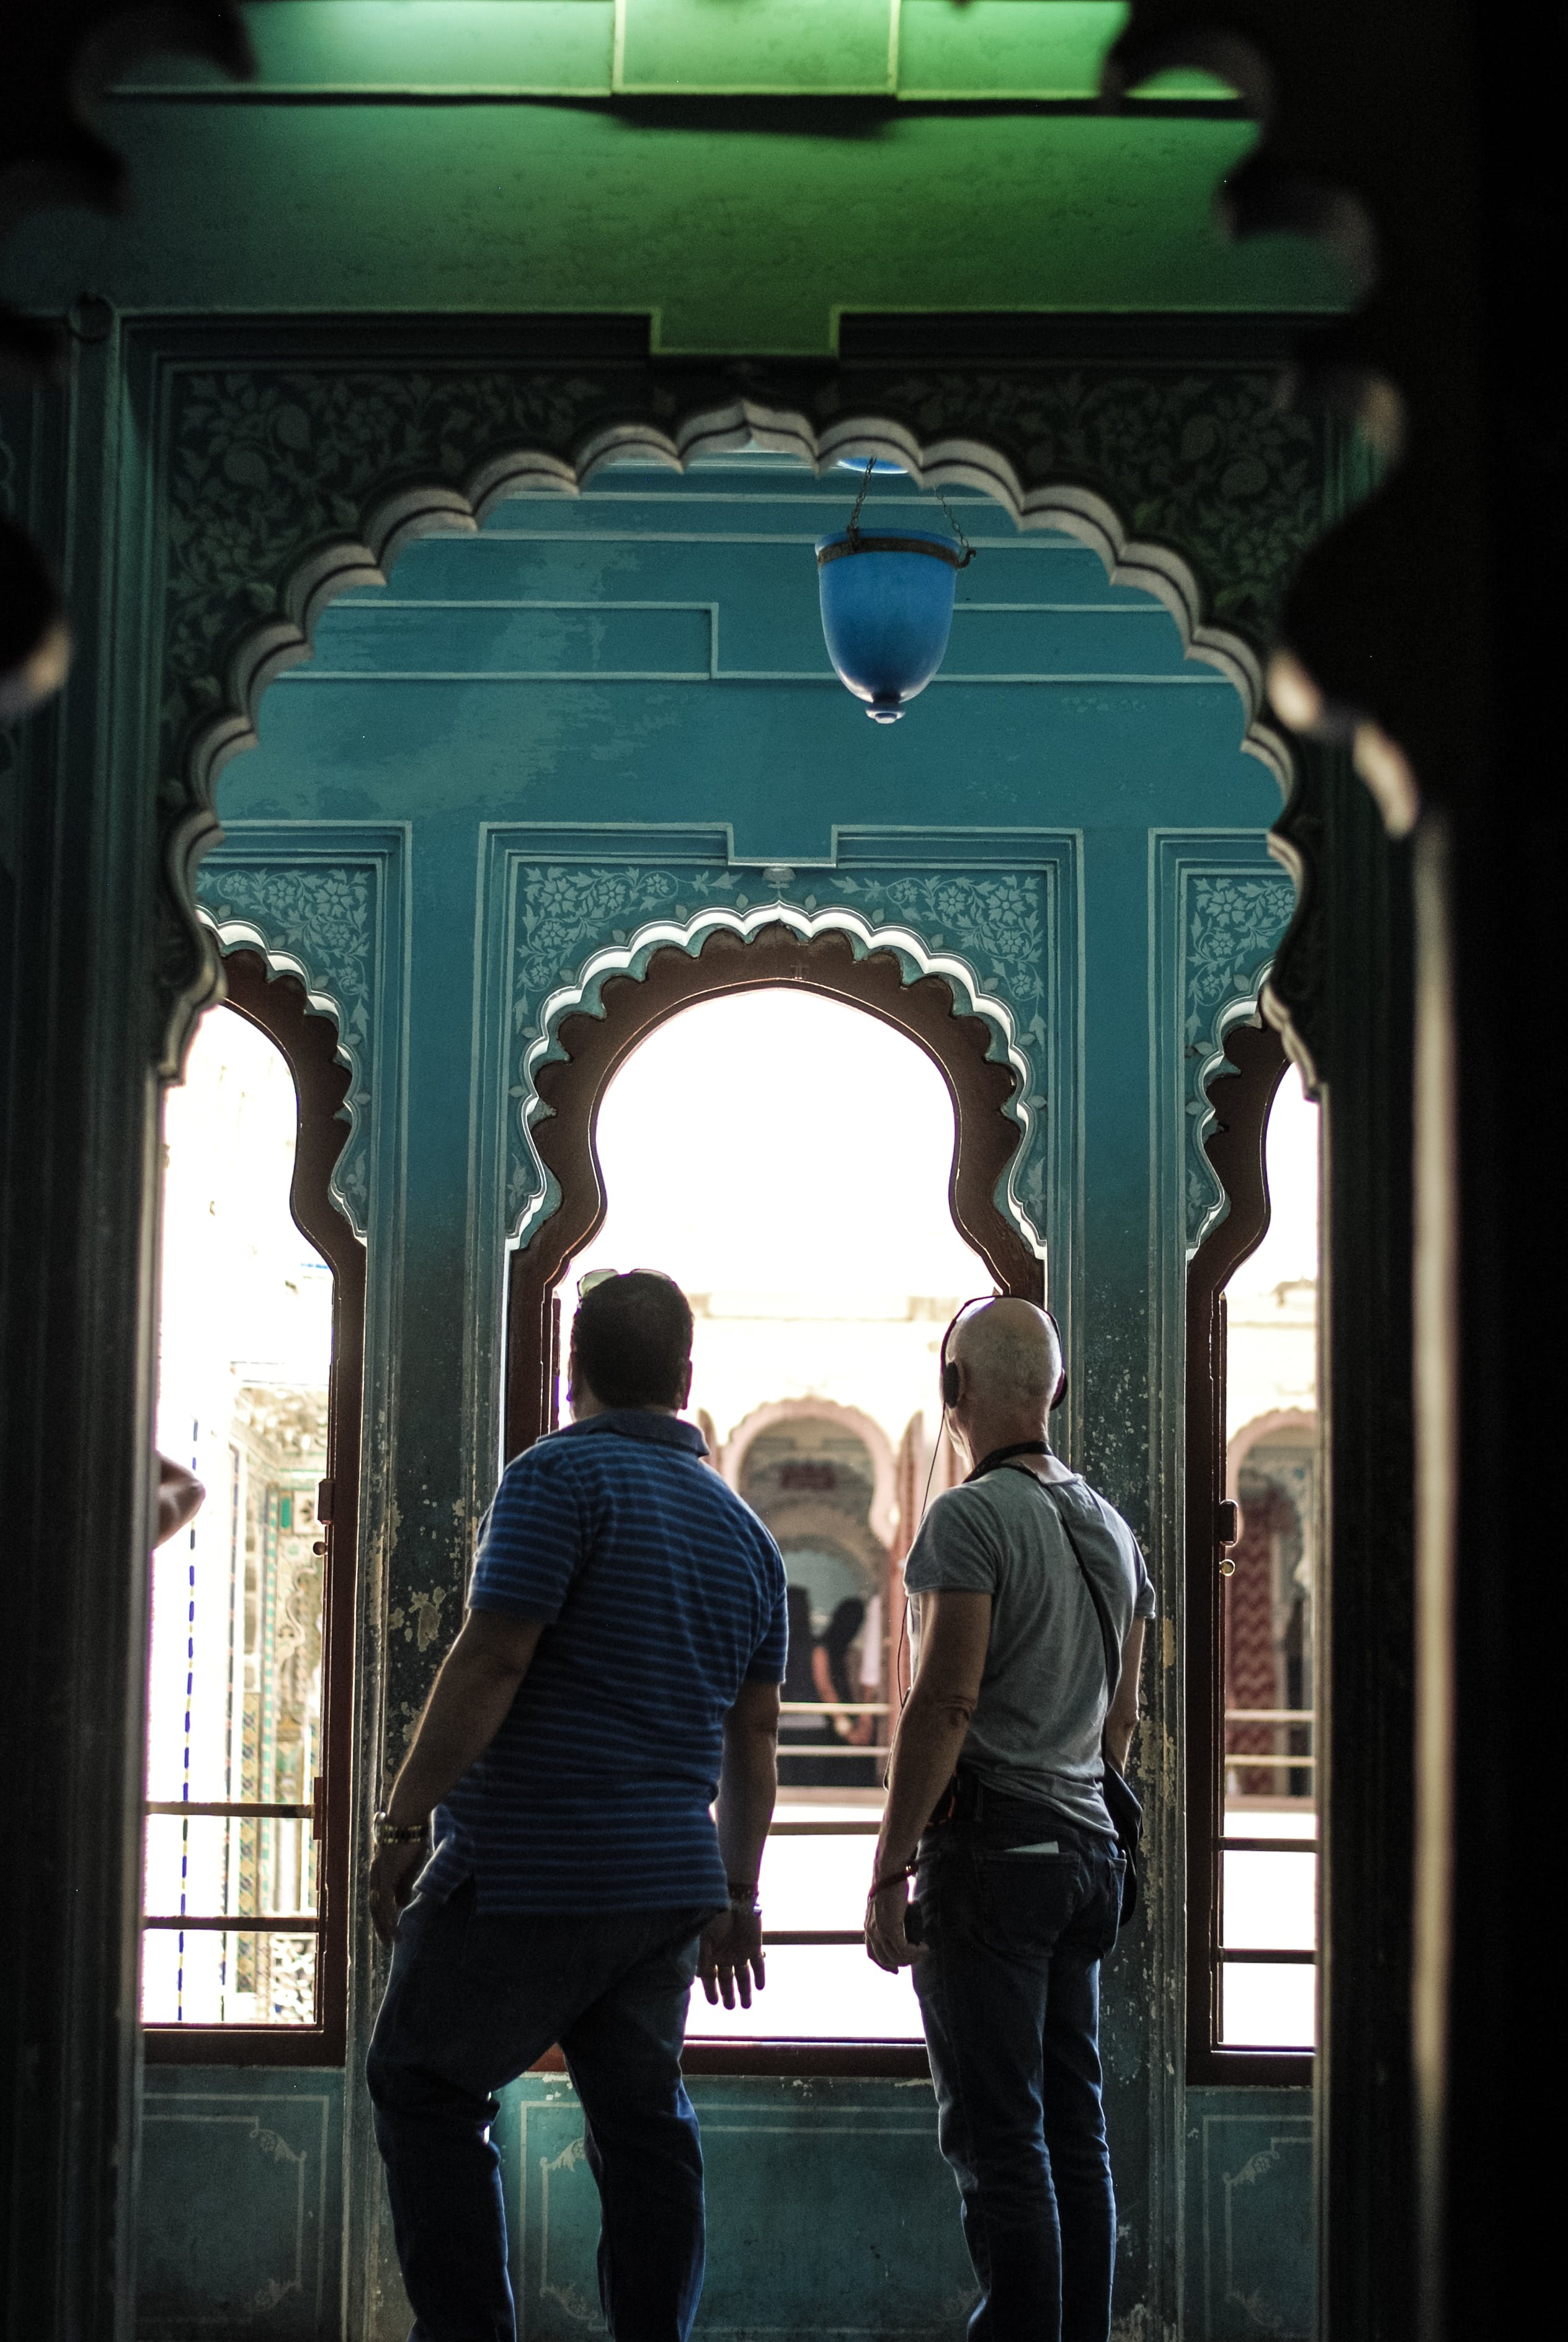 Free stock photo of place, rajasthan, tourist attraction, tourist spot